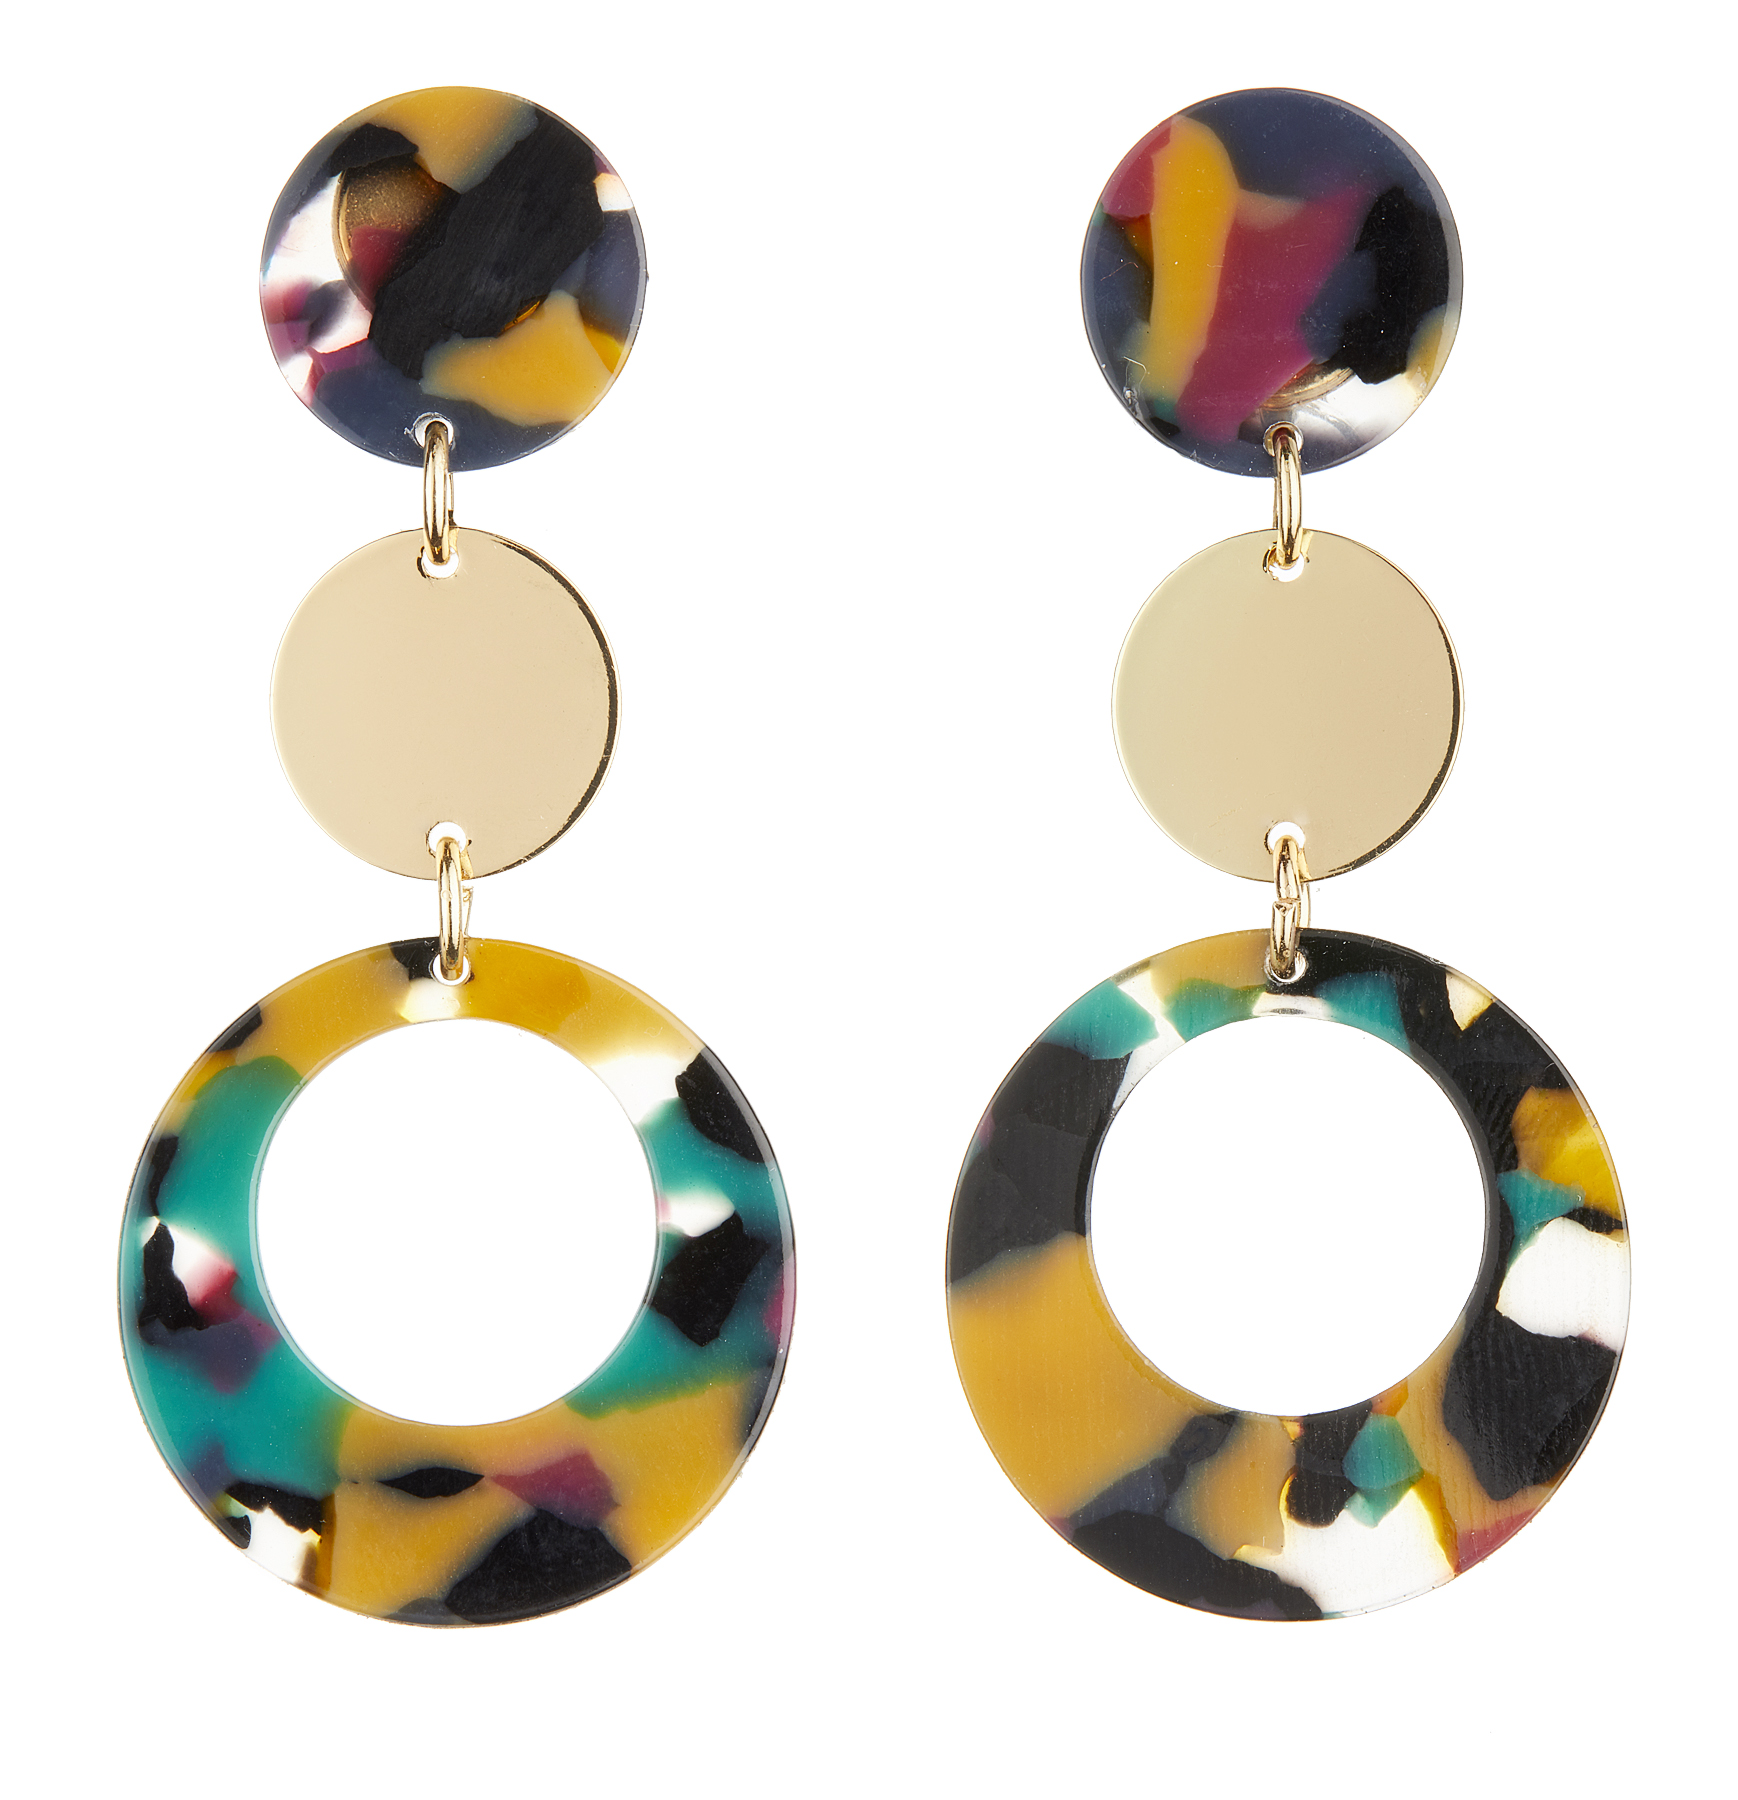 Clip On Earrings - Edris M - gold drop earring with multi coloured acrylic